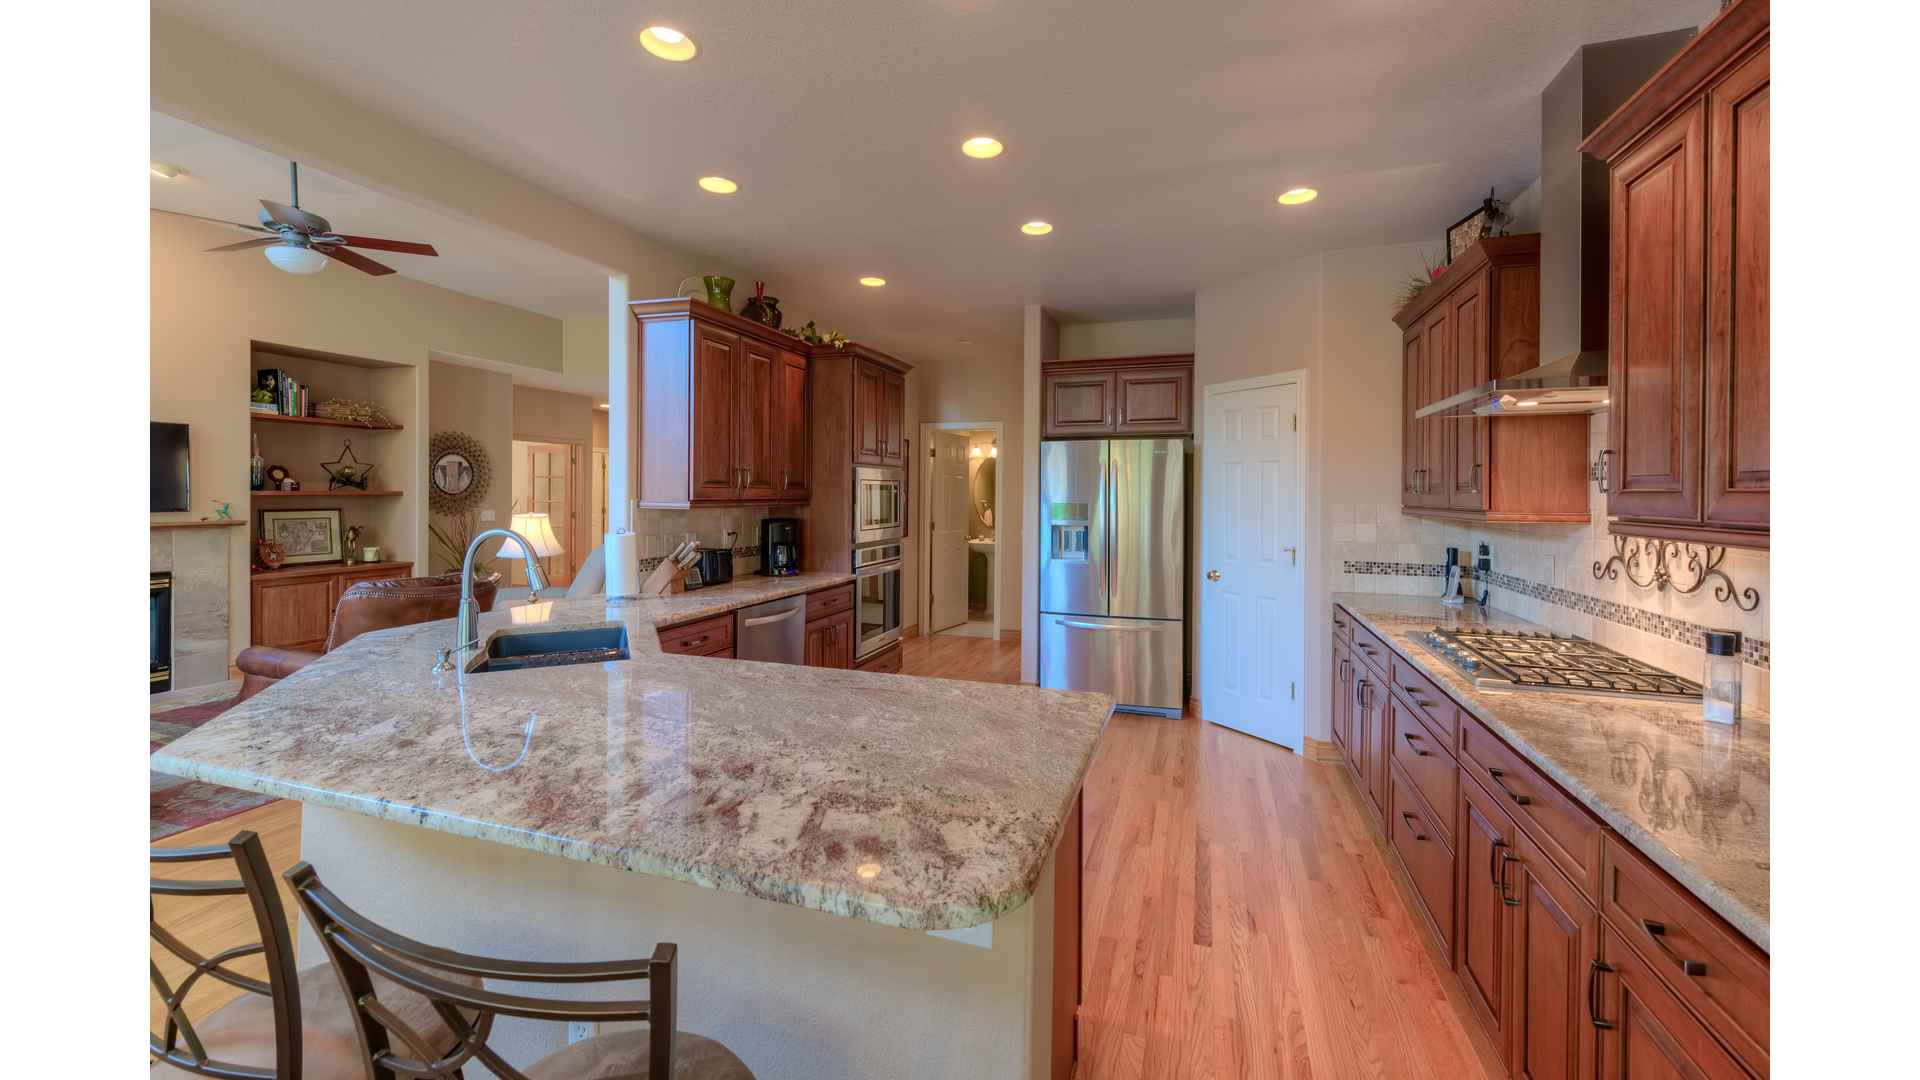 05 1995 Kitchen1 5TMDE Default RVT2 NR 1920 - Real Estate Photos